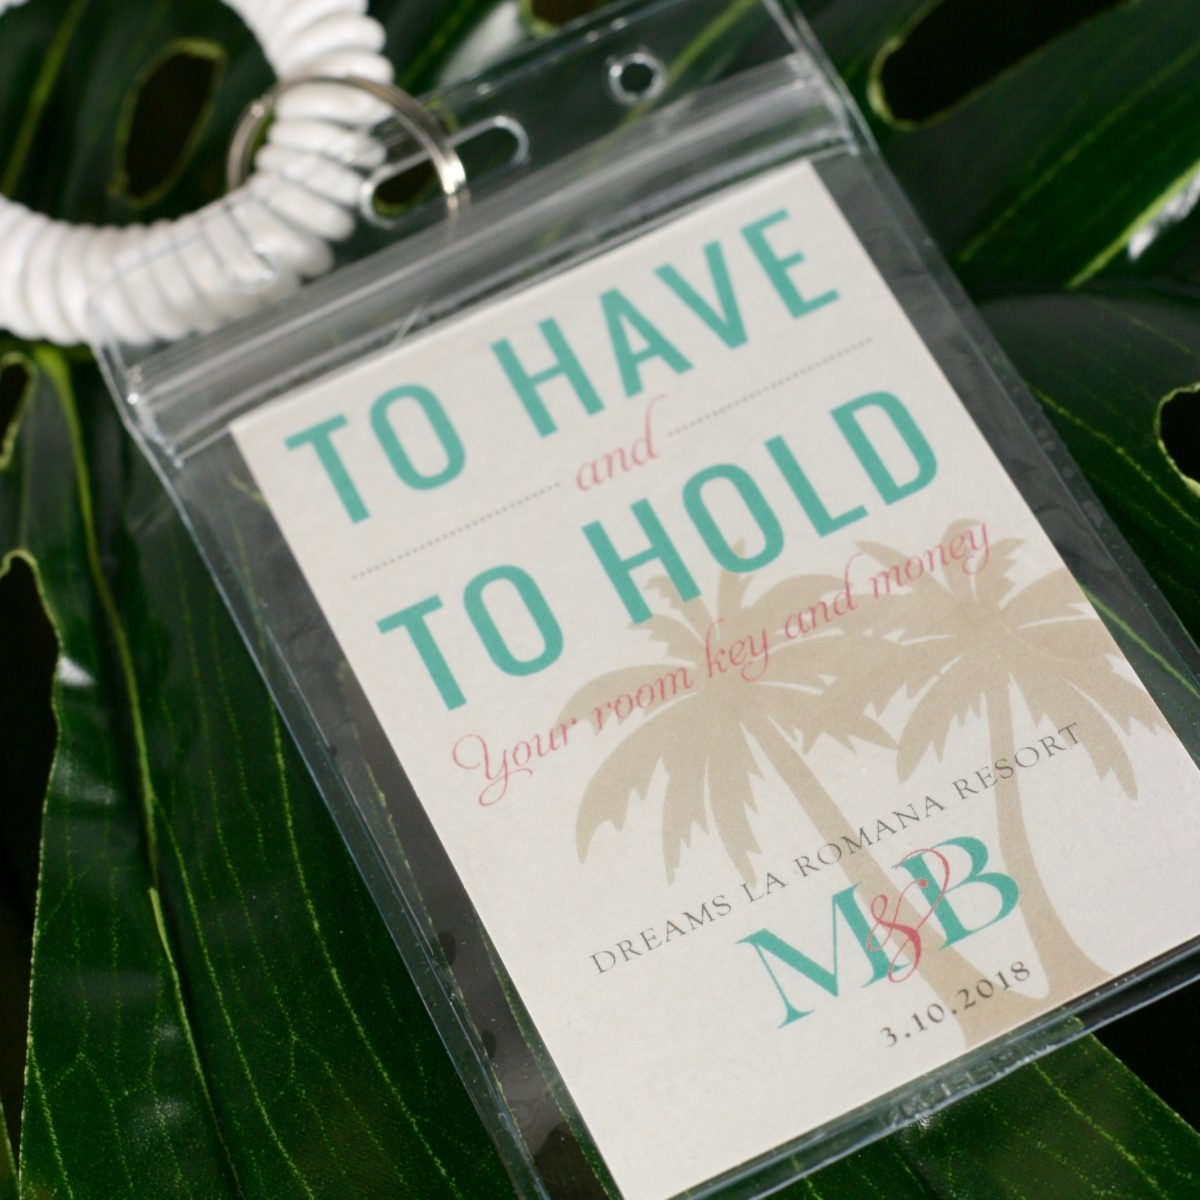 To have and to hold your room key and money for your destination welcome bag   By Posted Fete #DestinationWedding #BeachWedding #WelcomeBag